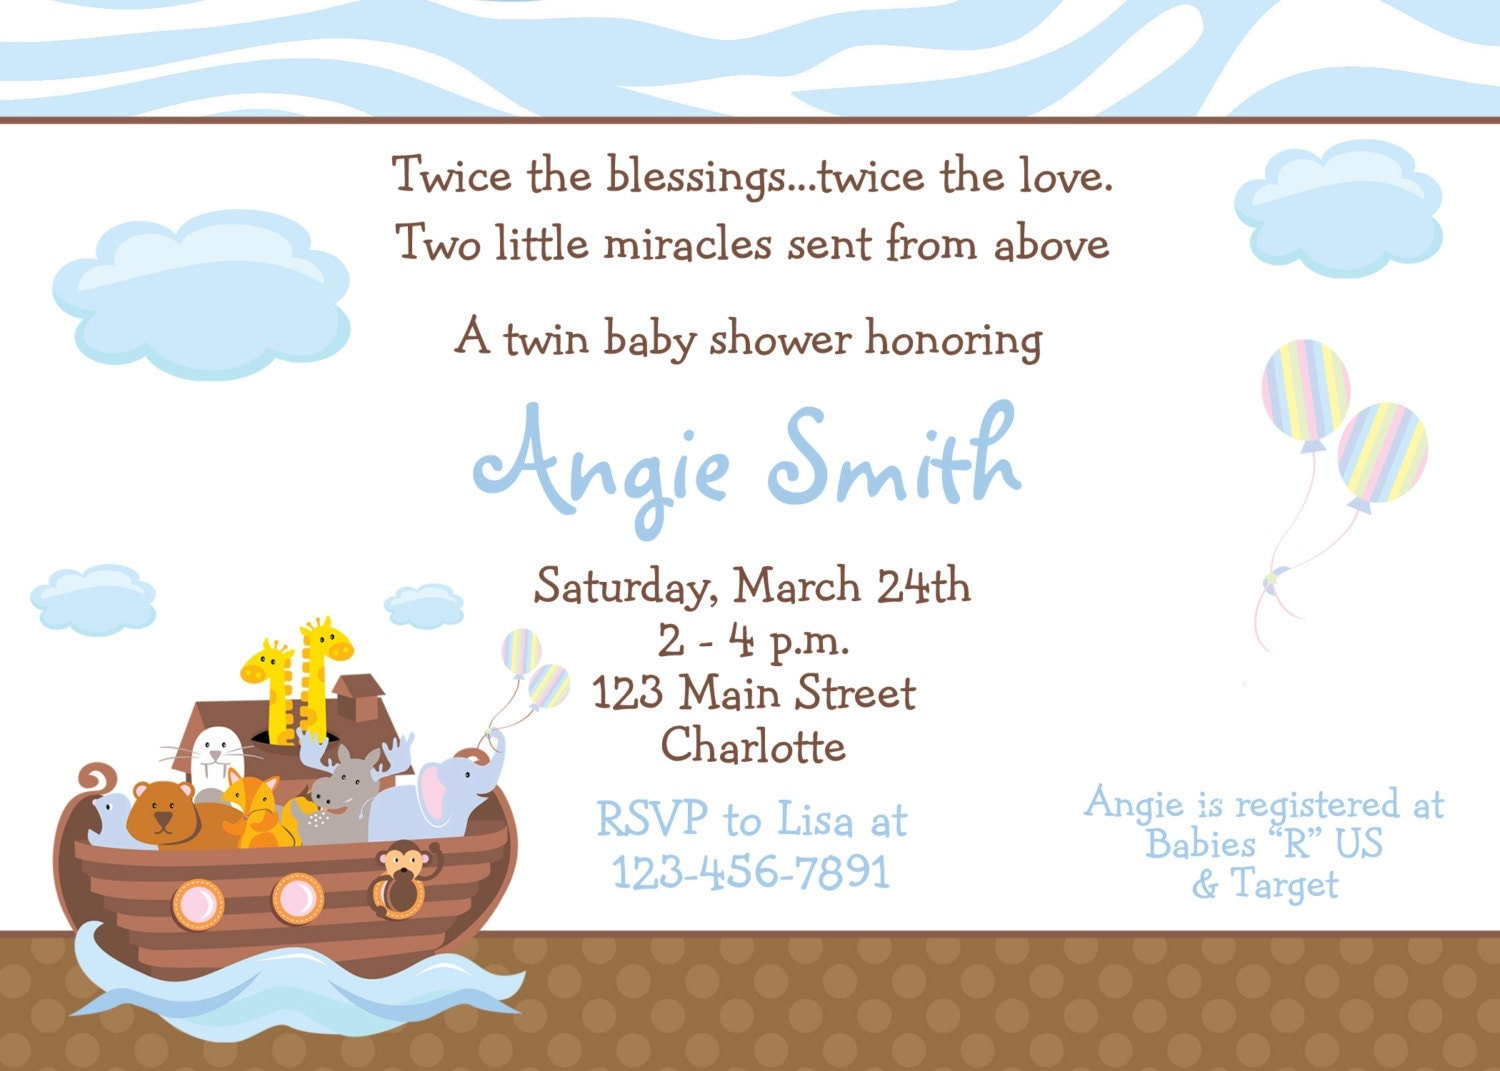 Twin Baby Shower Invitation Templates as amazing invitations ideas